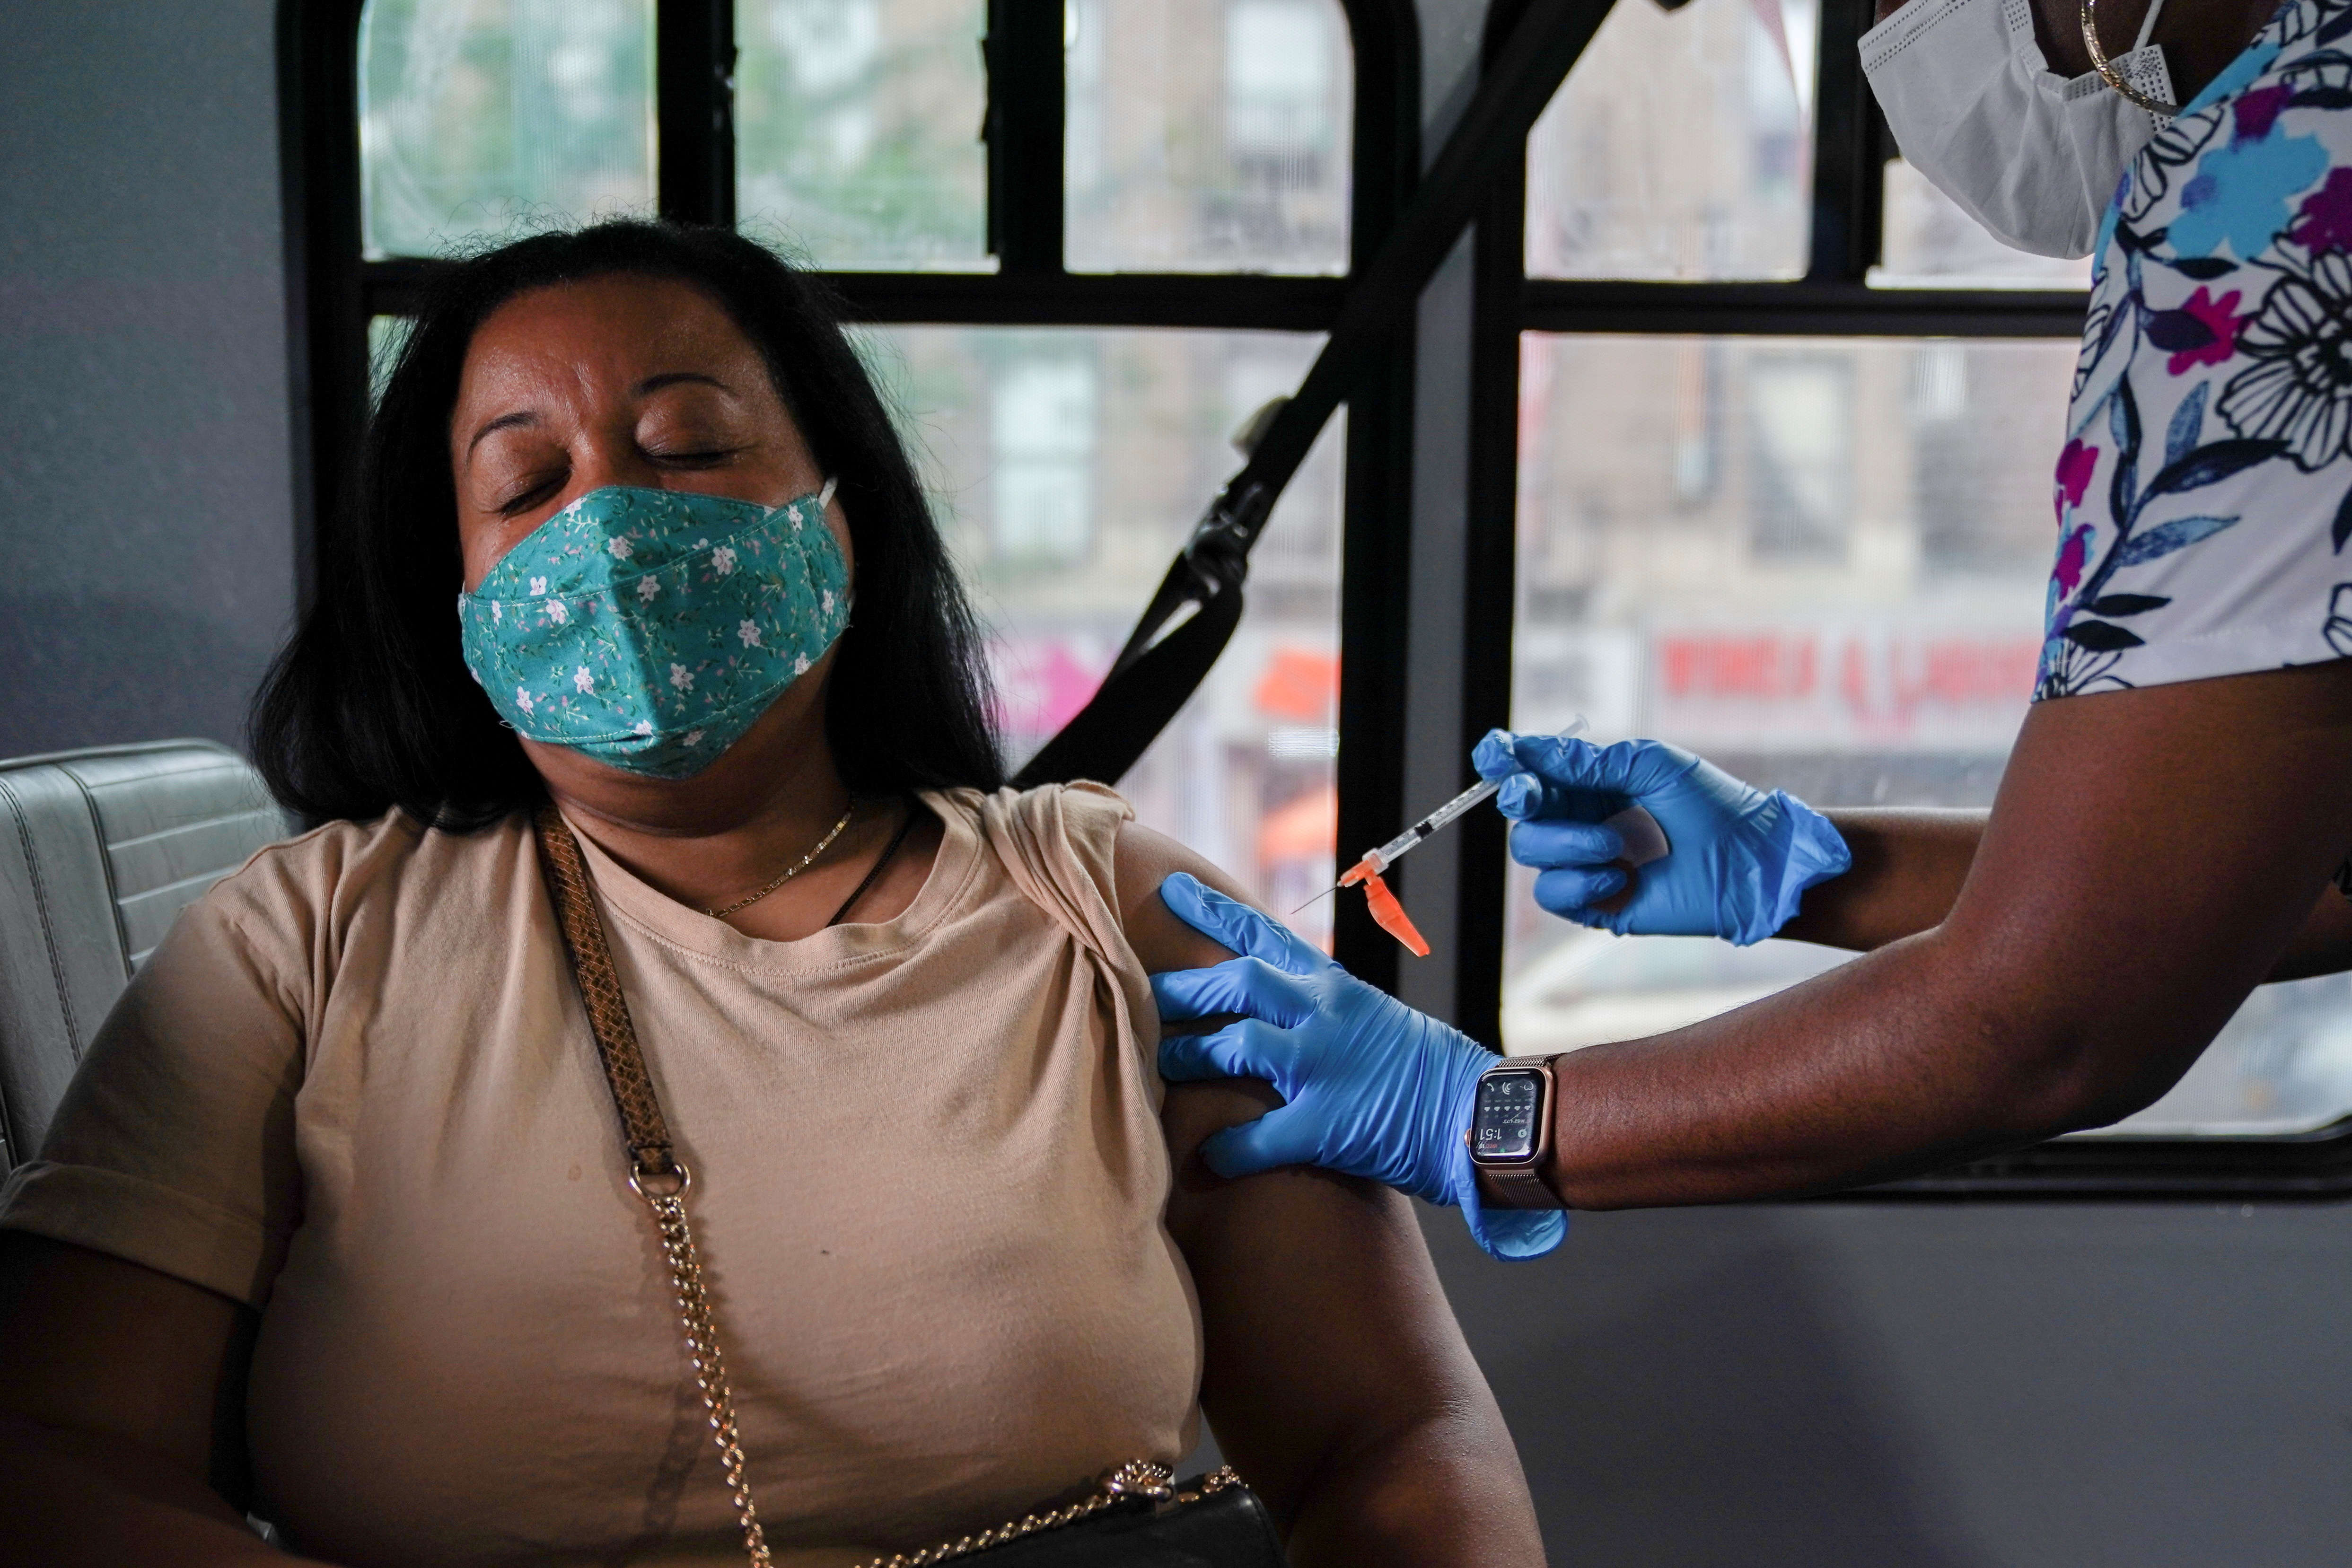 A person receives a dose of the Pfizer-BioNTech vaccine for the coronavirus disease (COVID-19), at a mobile inoculation site in the Bronx borough of New York City, New York, U.S., August 18, 2021.  REUTERS/David 'Dee' Delgado